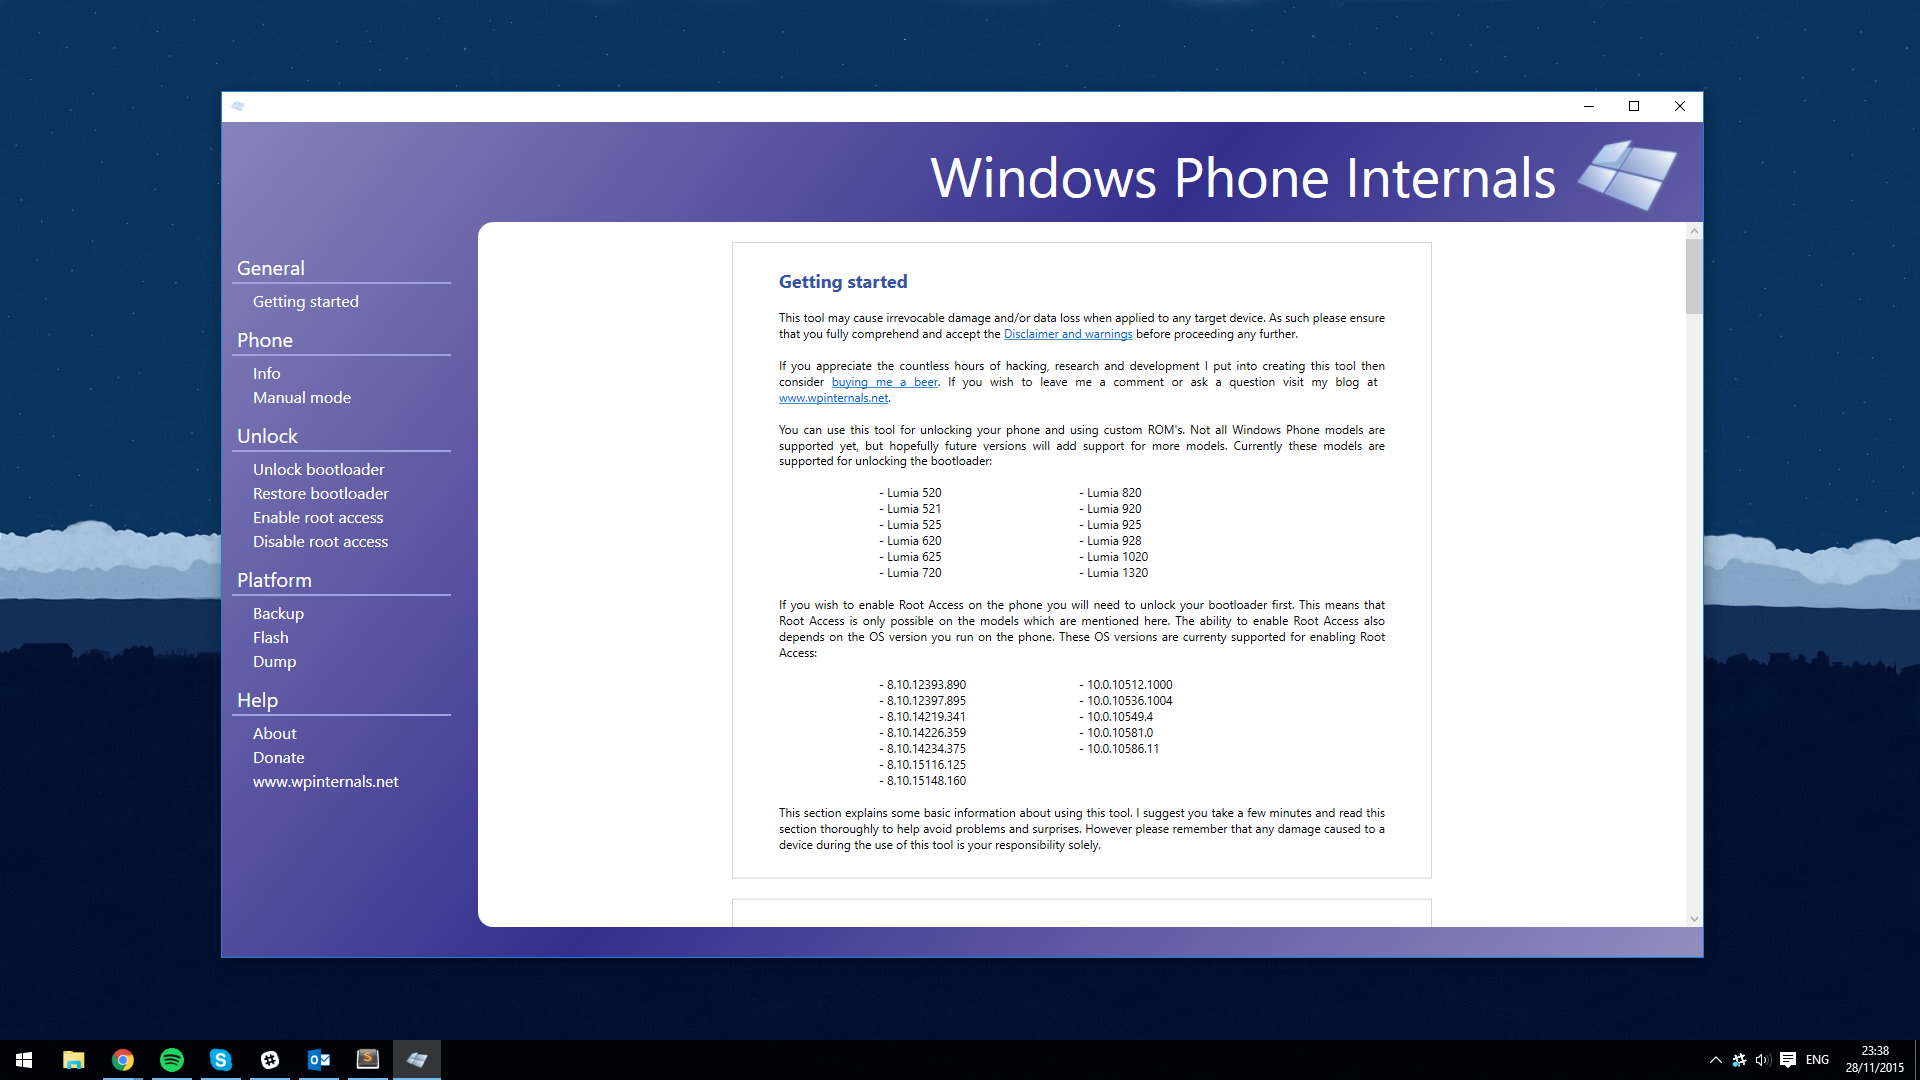 Hacker gets Windows RT 8 1 (WinPE) running on a Lumia 520